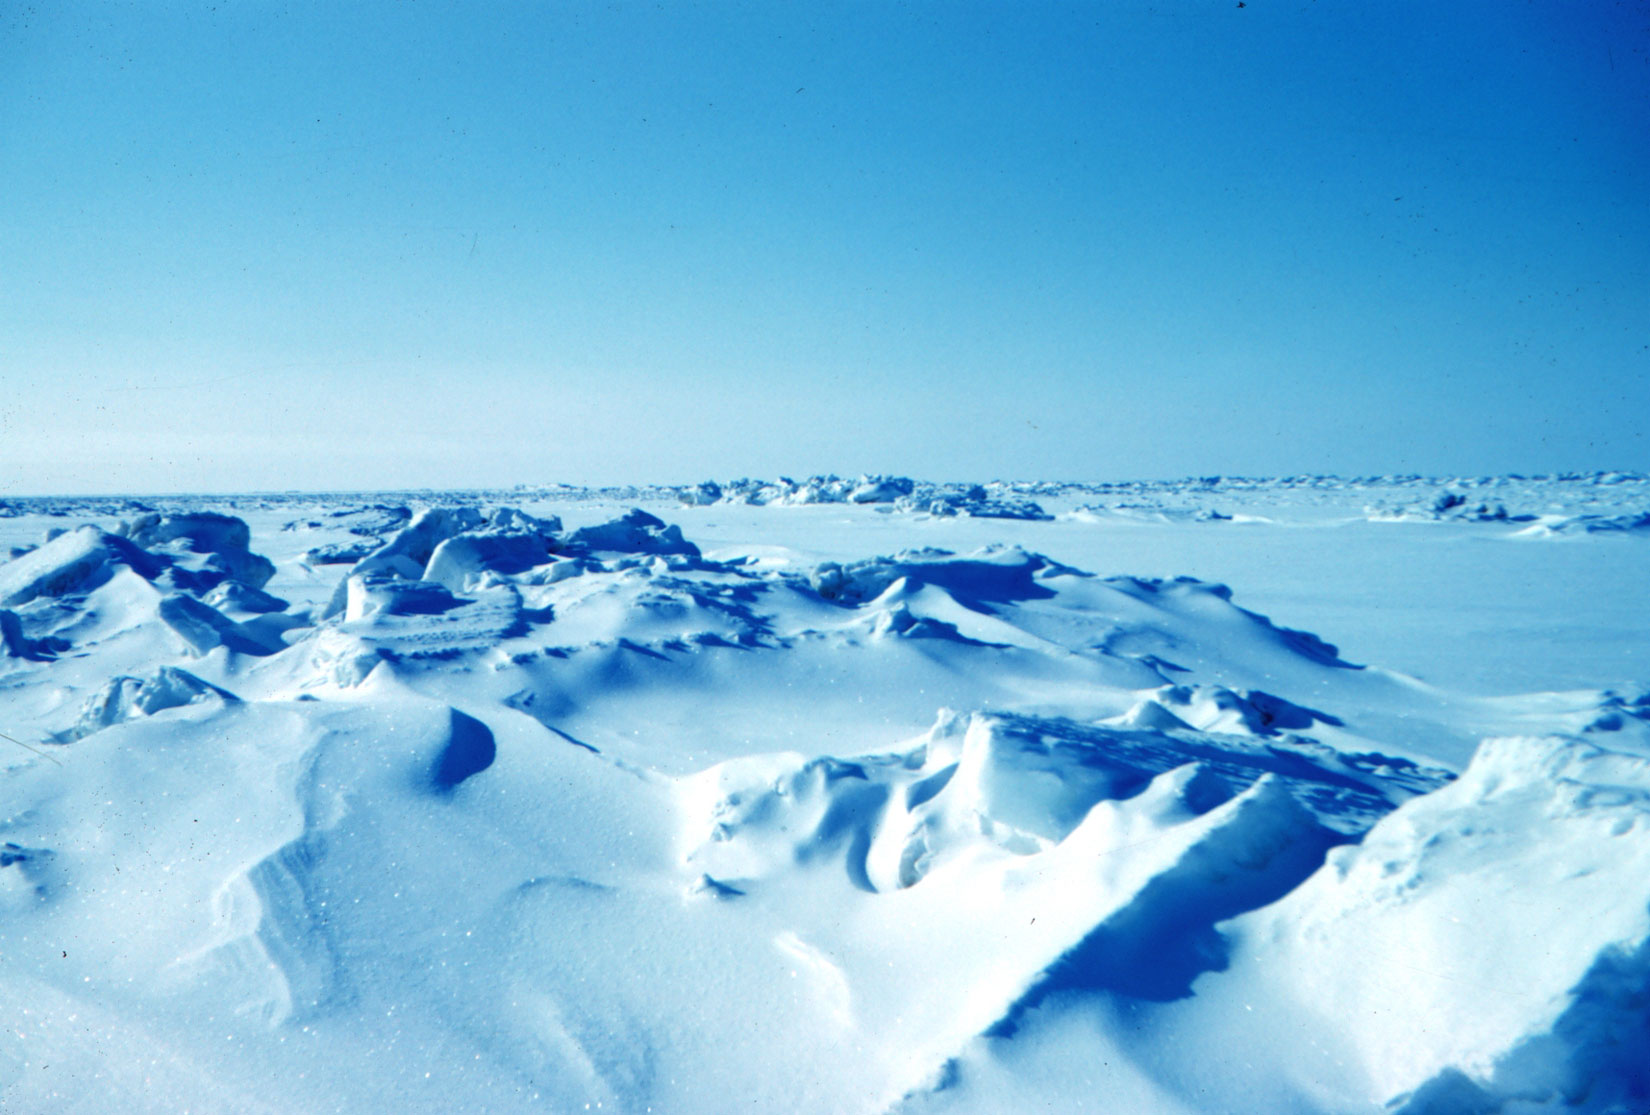 A color photograph shows a wide open blue sky and ice and snow far into the distance. Some areas of snow and ice are flat and some have ice jutting up and making small hills.